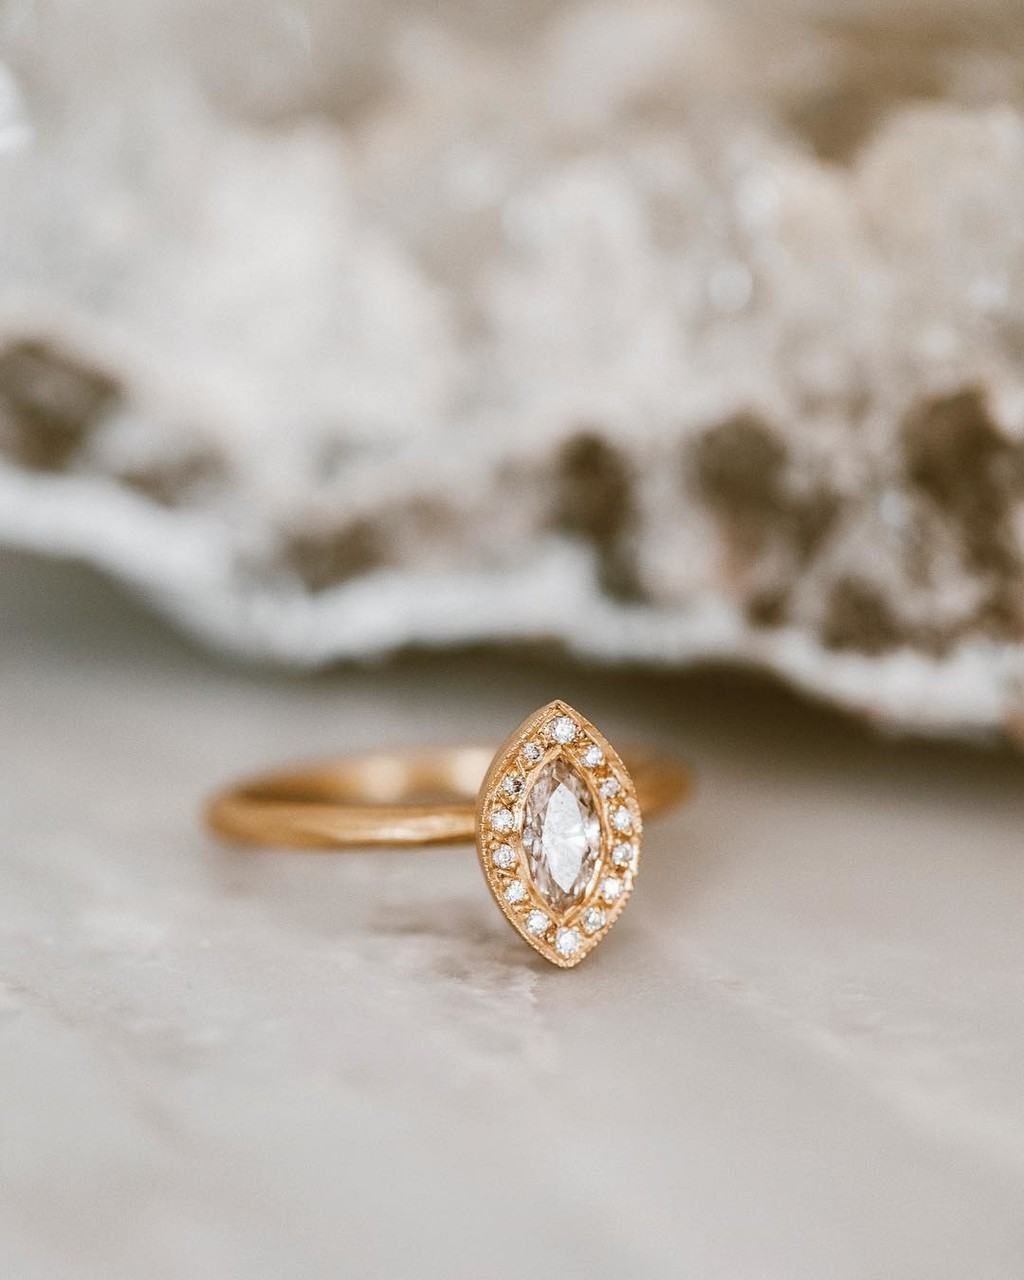 Marquise Monday featuring this dazzling rough diamond with a diamond halo.